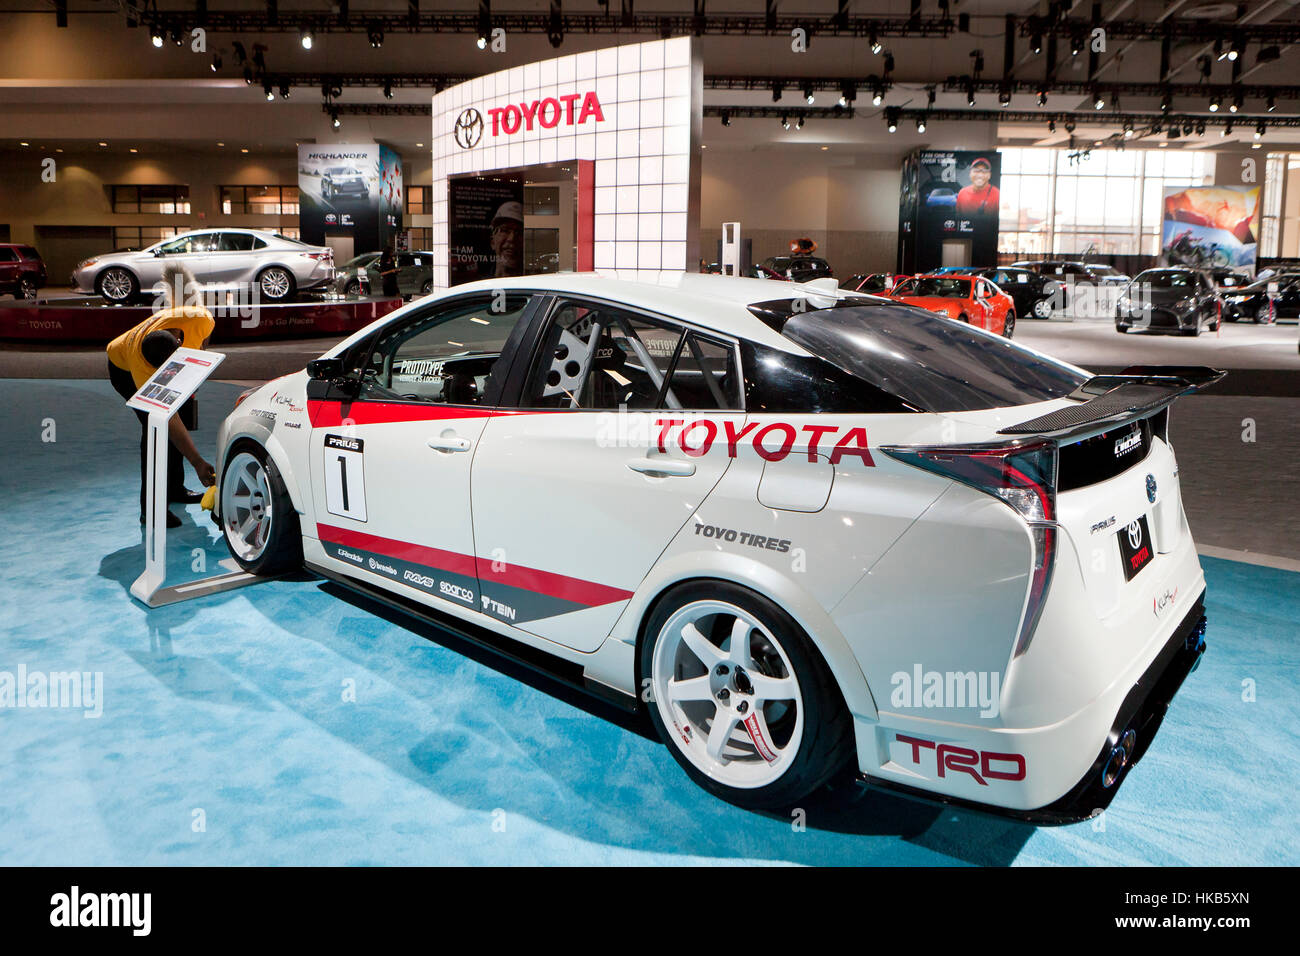 Toyota Racing Car Stock Photos Amp Toyota Racing Car Stock